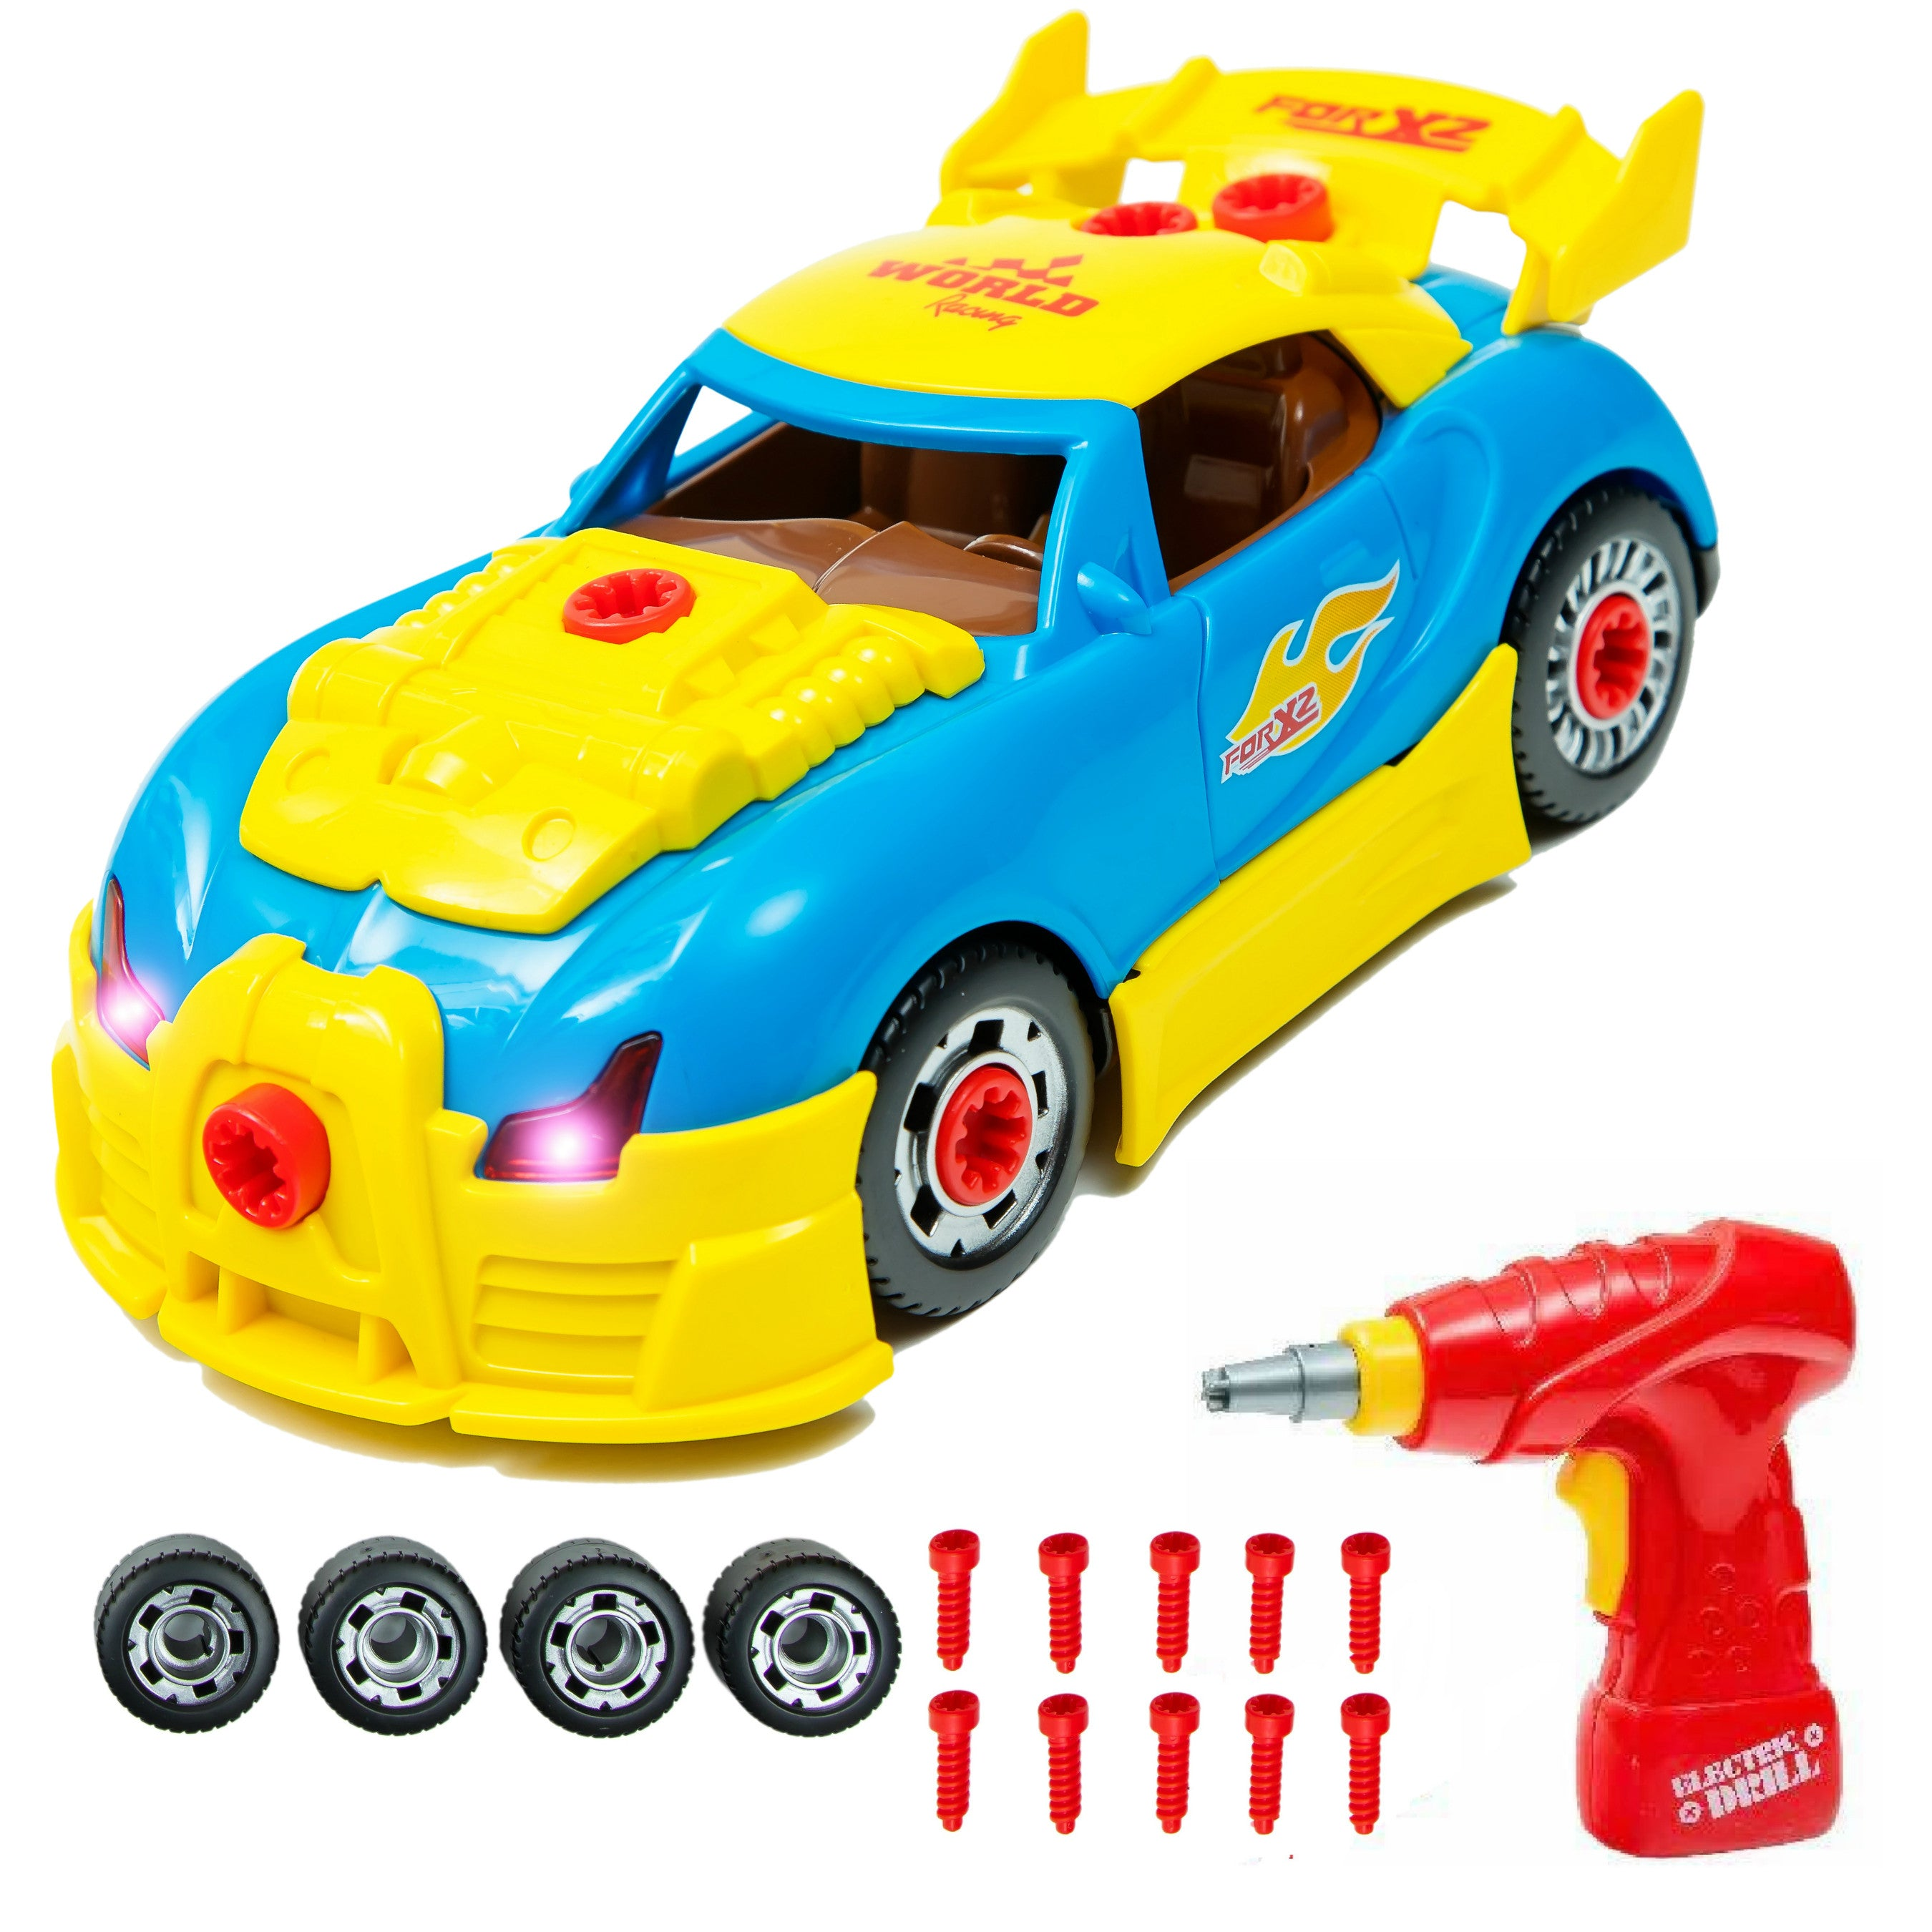 take apart toy racing car kit set build your own model race car construction set